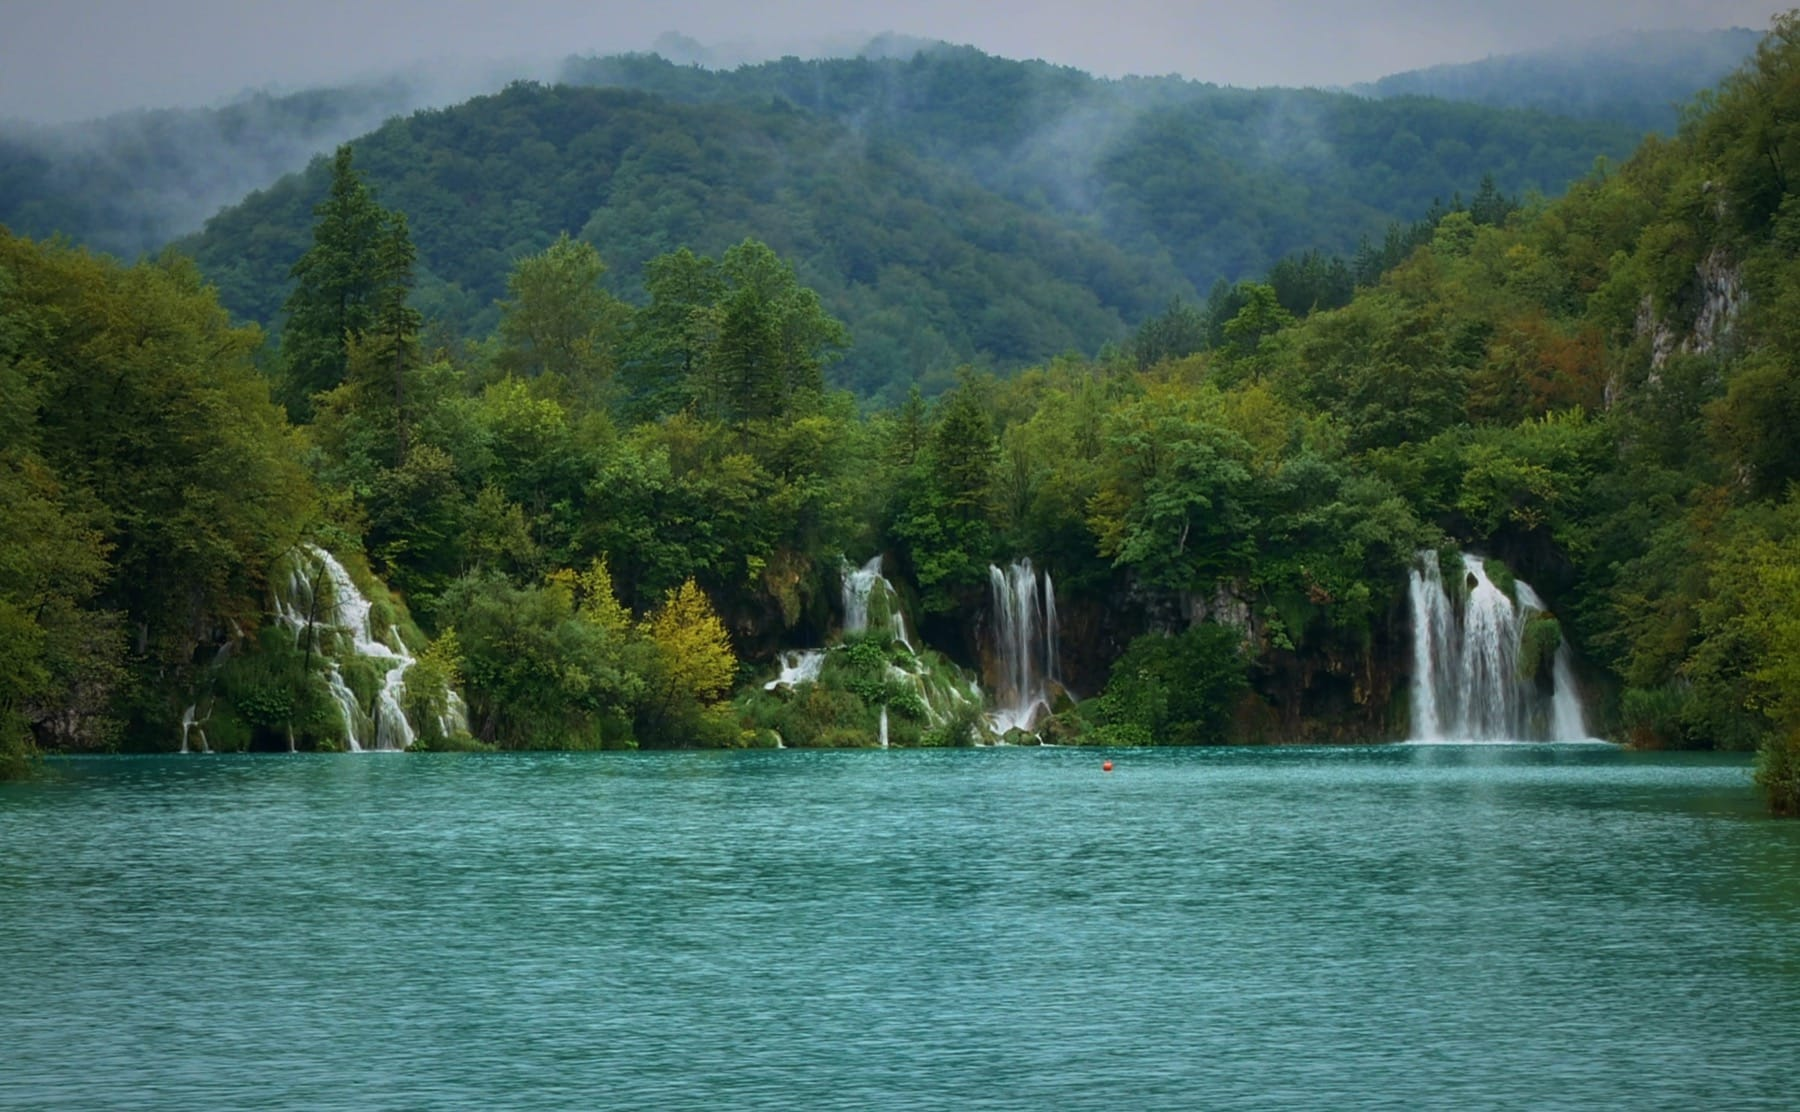 Award of the most waterfalls goes to Plitvice